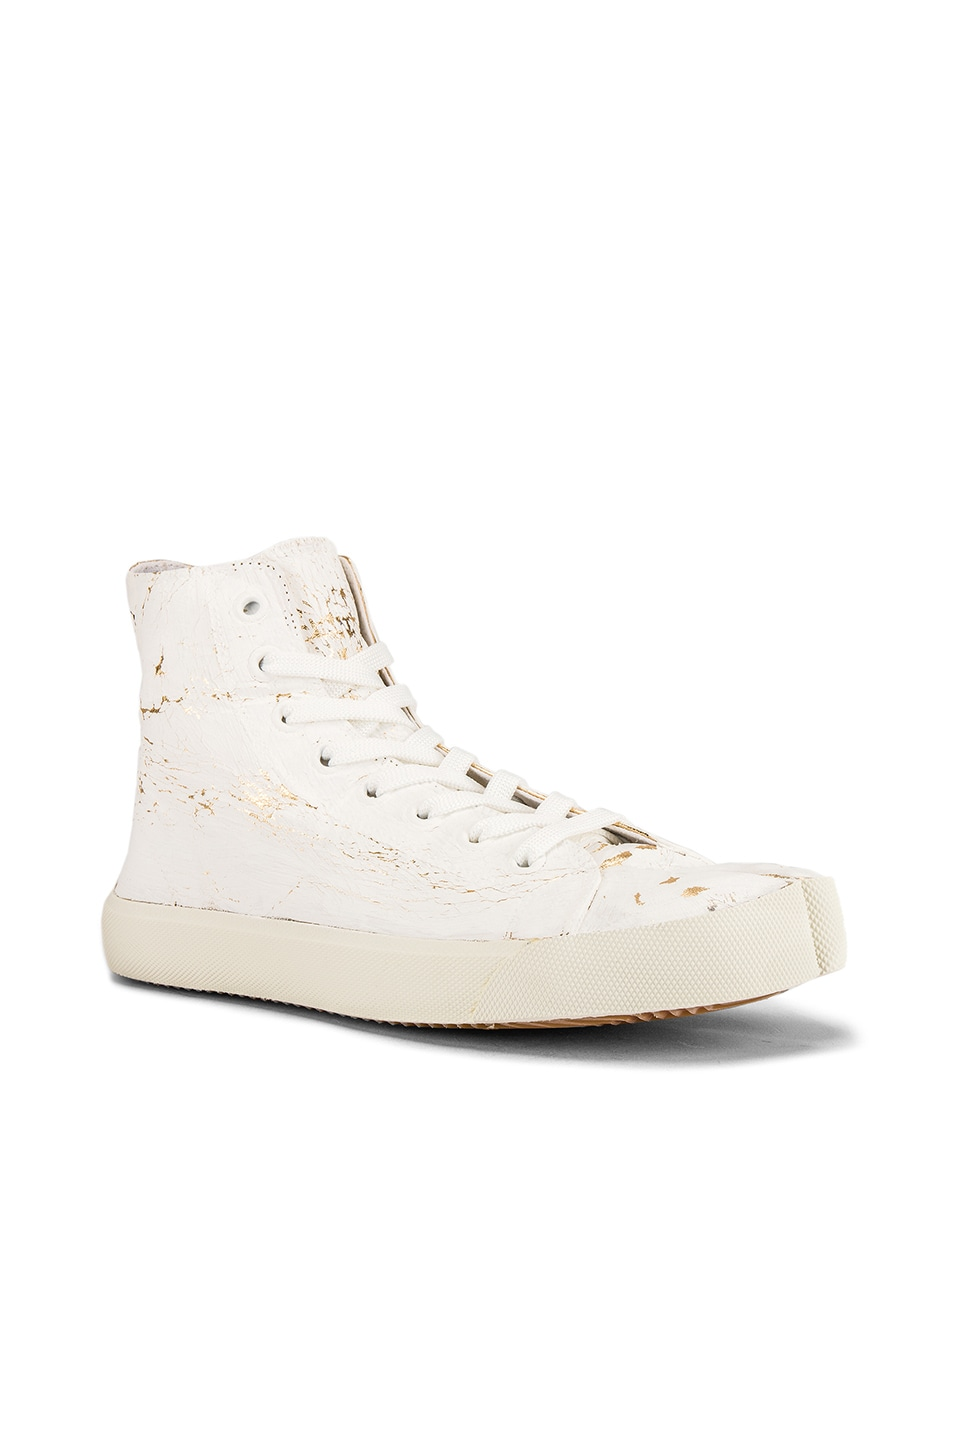 Image 1 of Maison Margiela Vandal Tabi Hi Top Sneaker in White & Gold